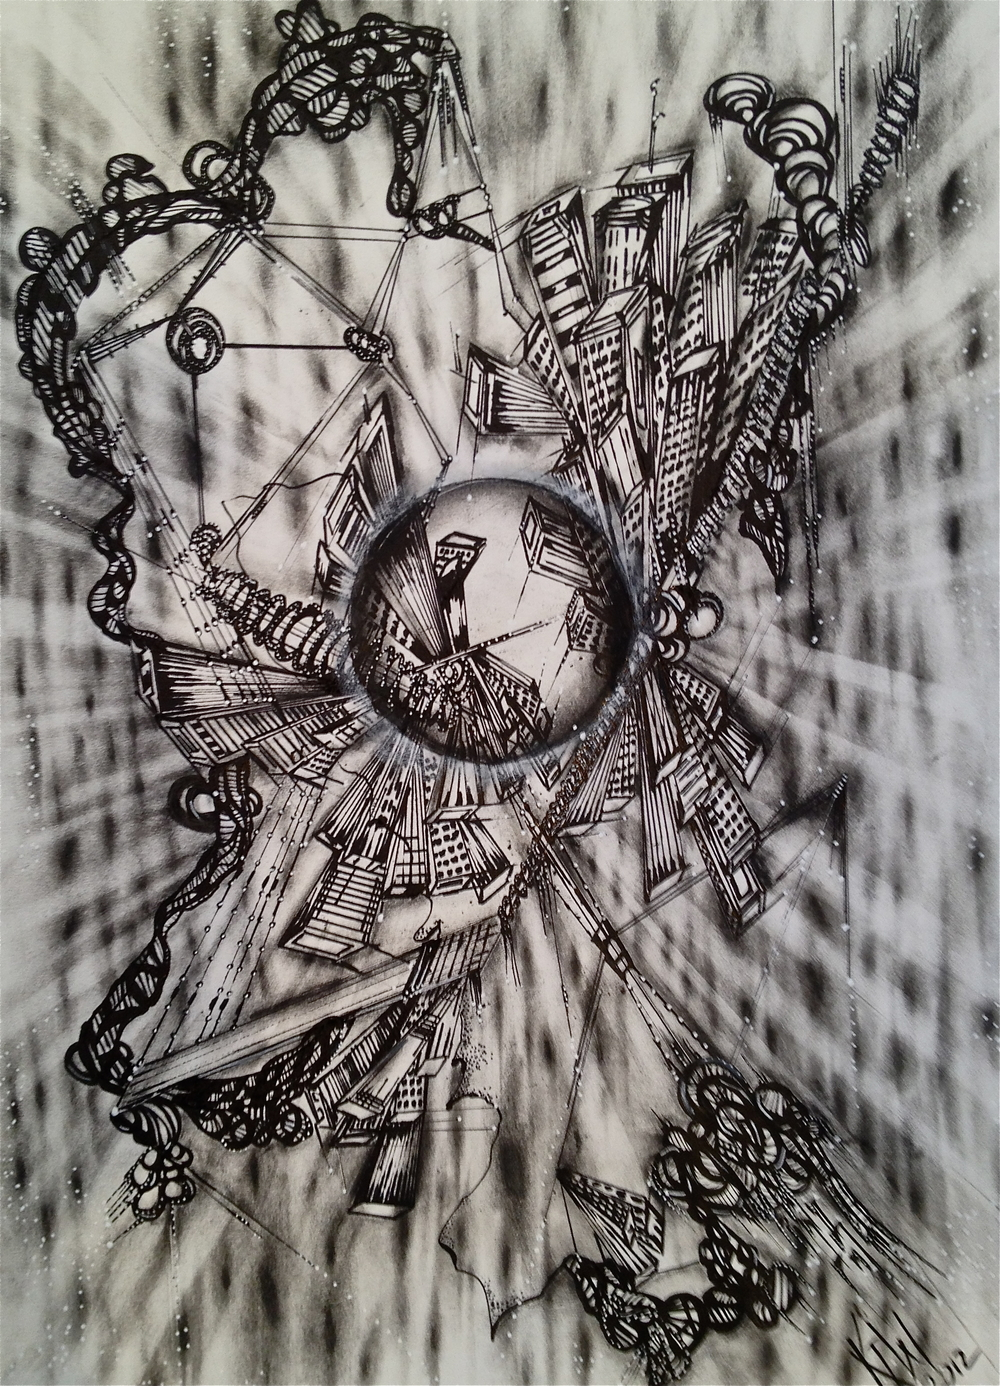 Distortions, 17x14 charcoal/pen on paper